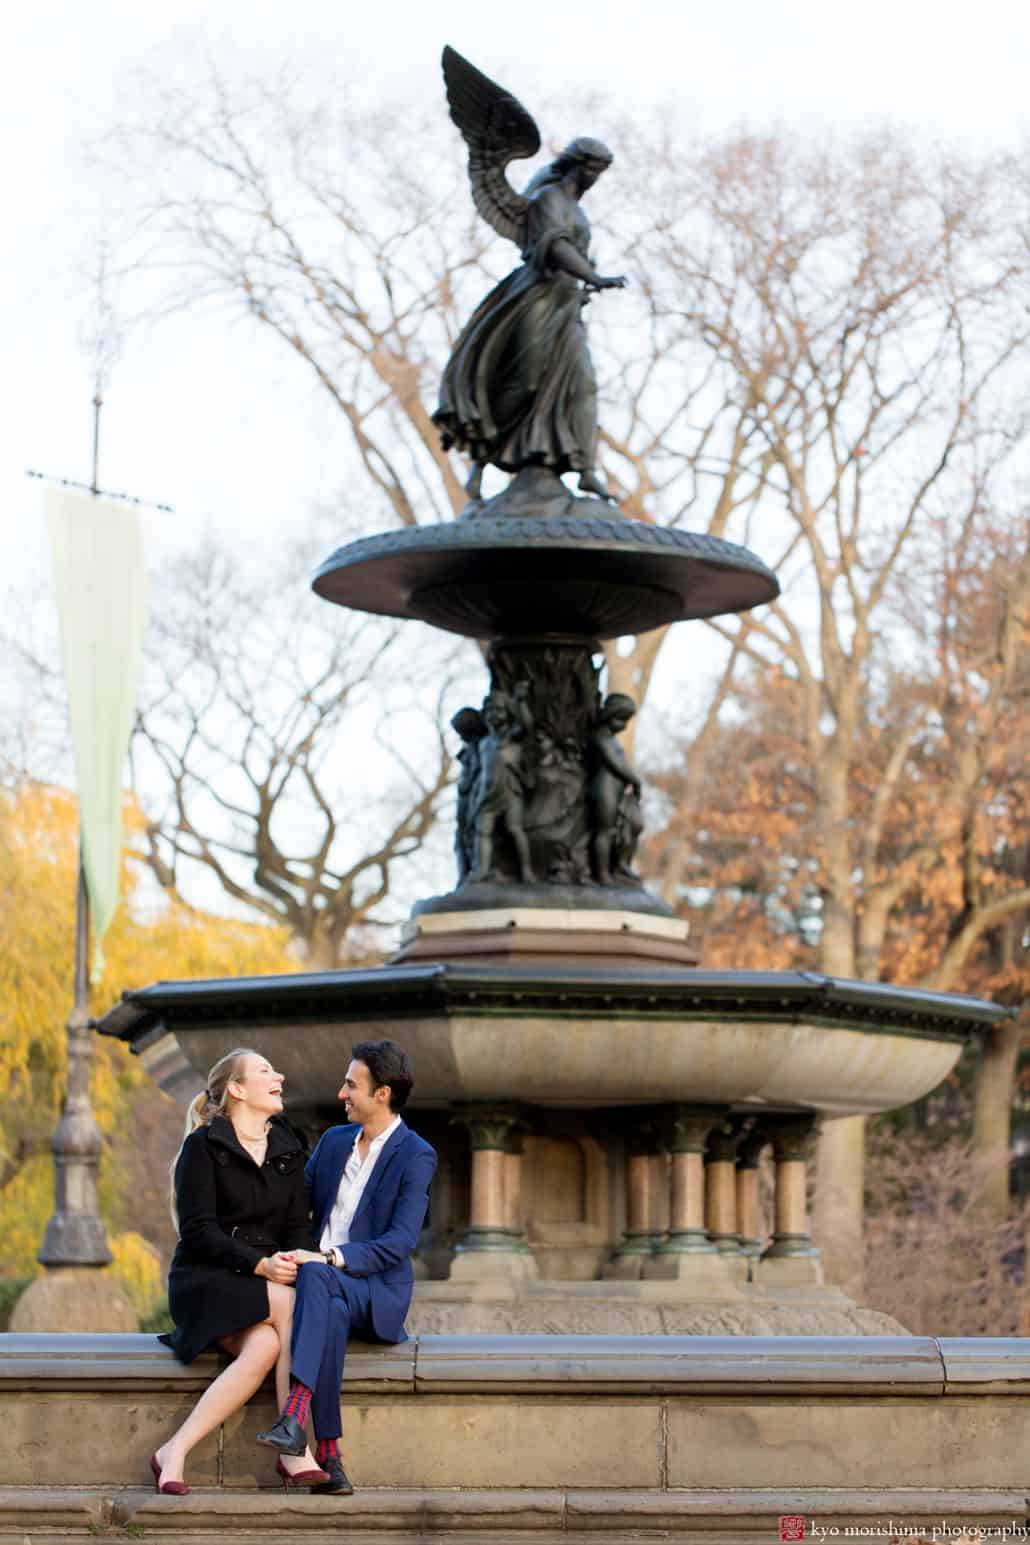 Central Park engagement photo at Bethesda Fountain; woman wears black jacket and man wears royal blue suit.